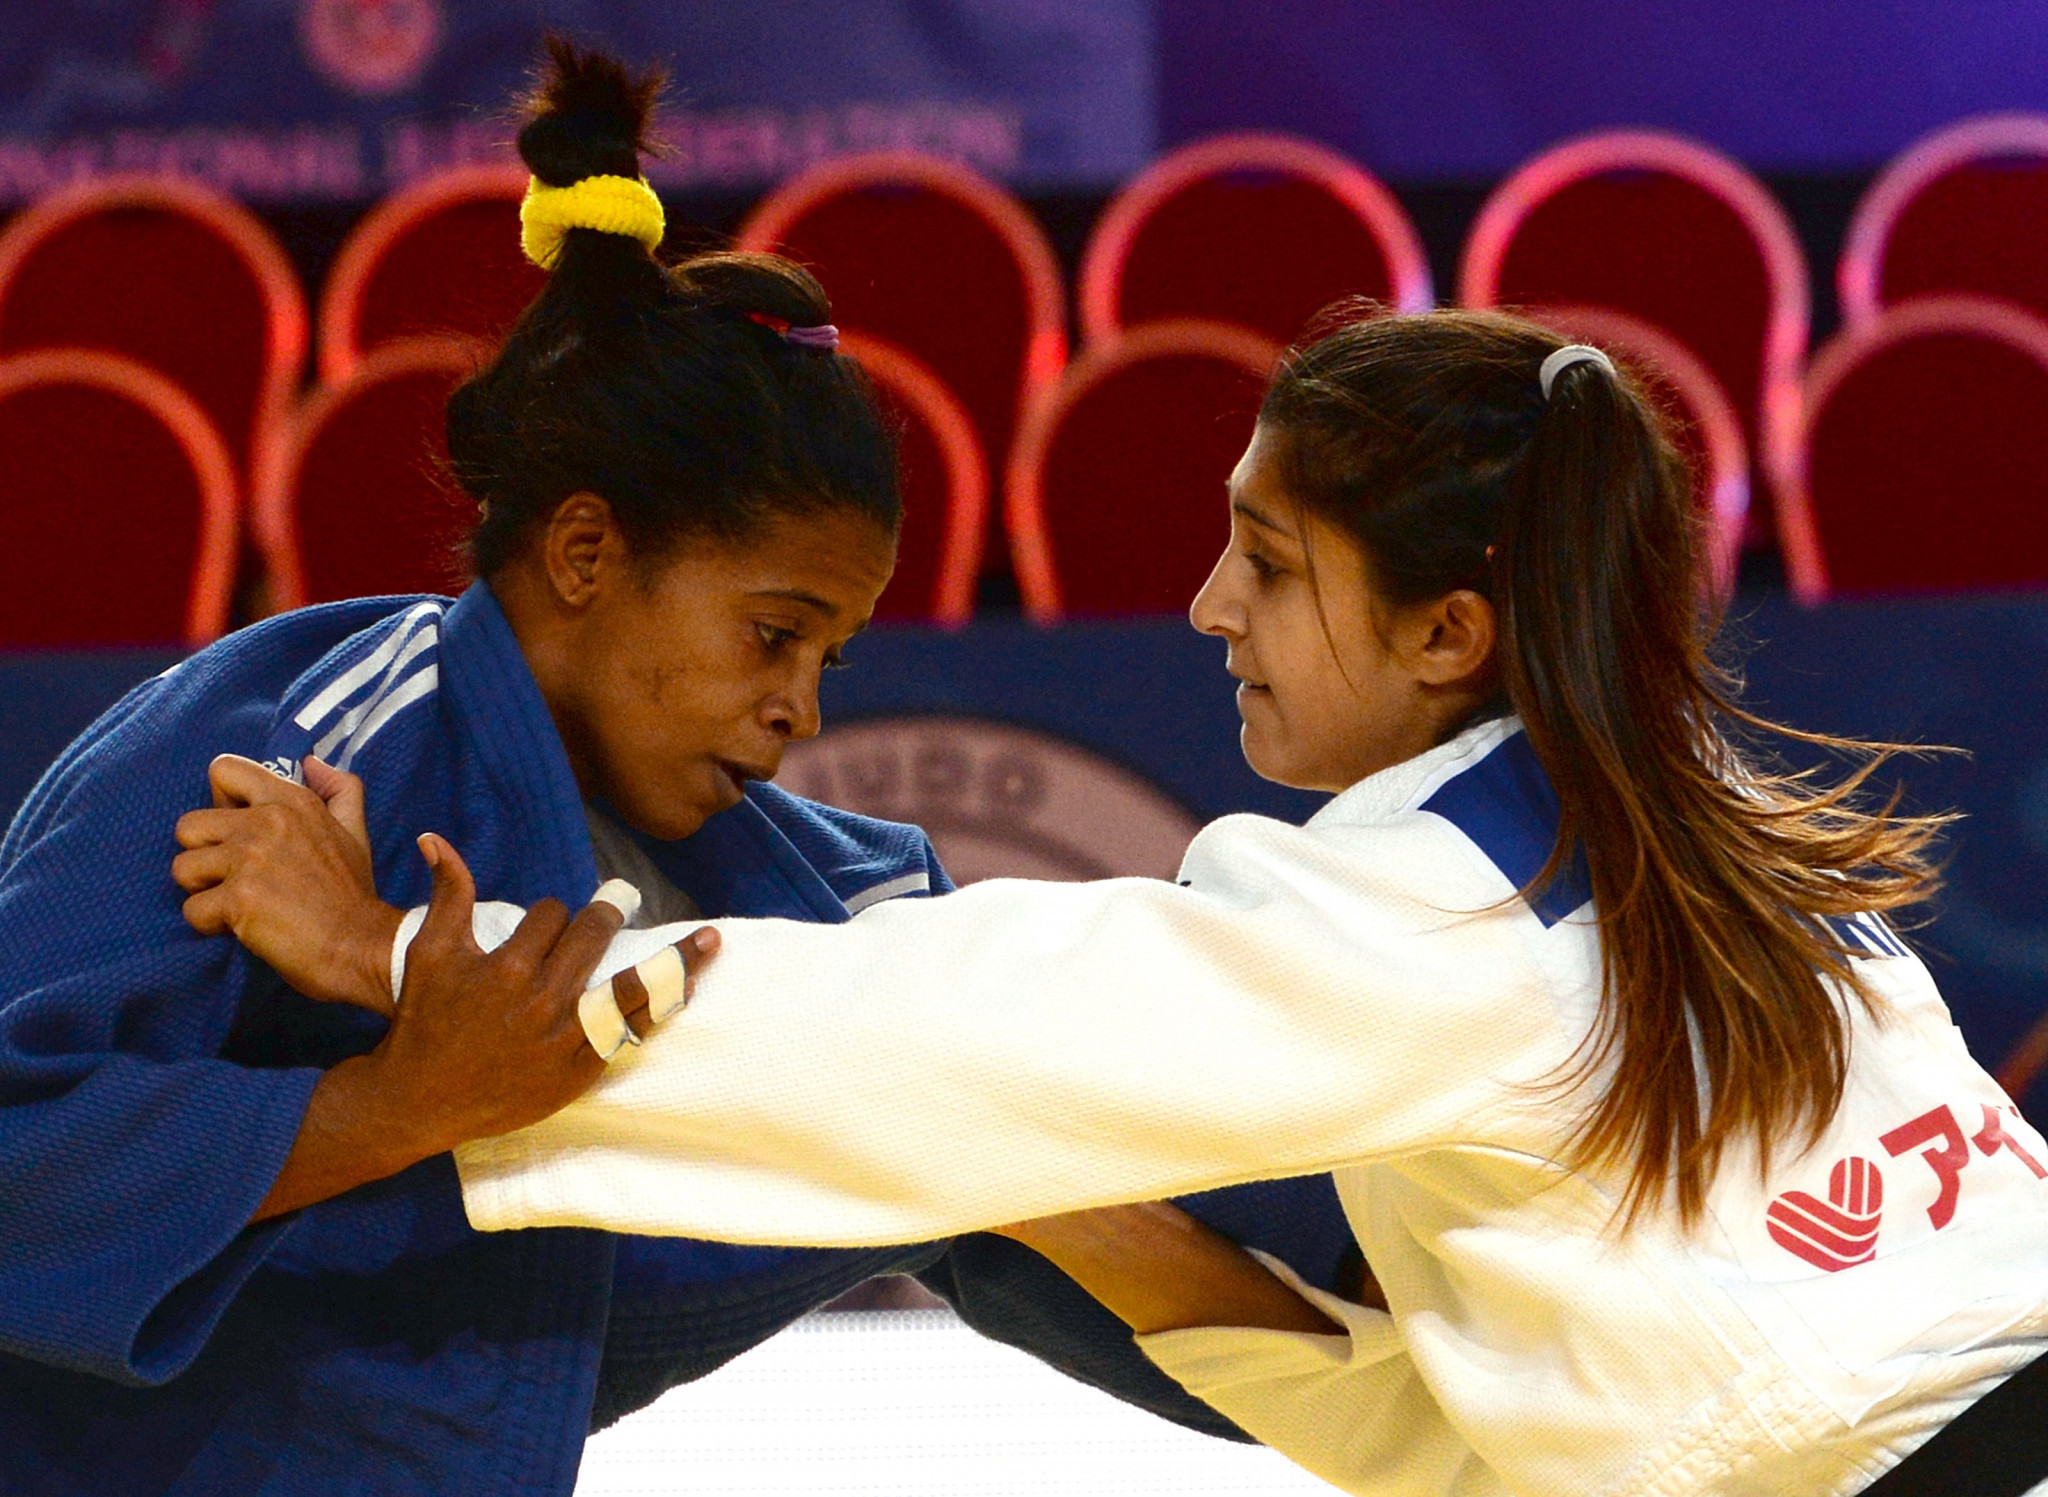 Four-time champion Dhouibi knocked out on opening day of African Judo Championships